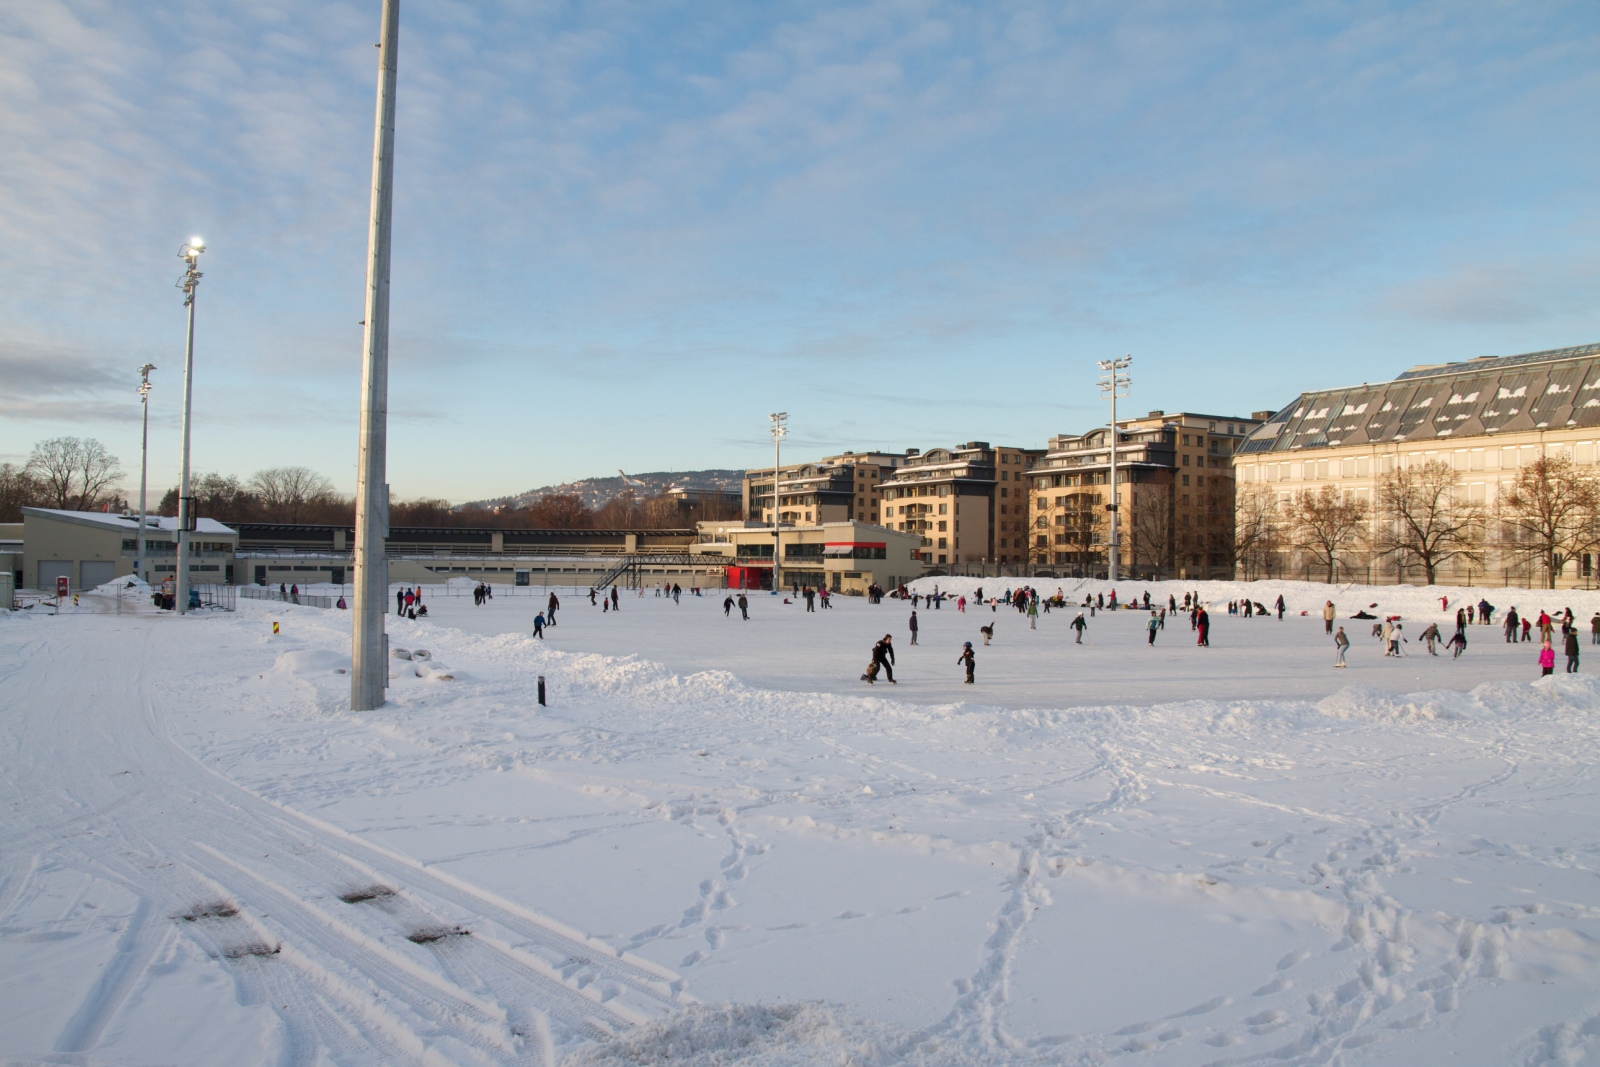 Frogner Ice Skating Rink